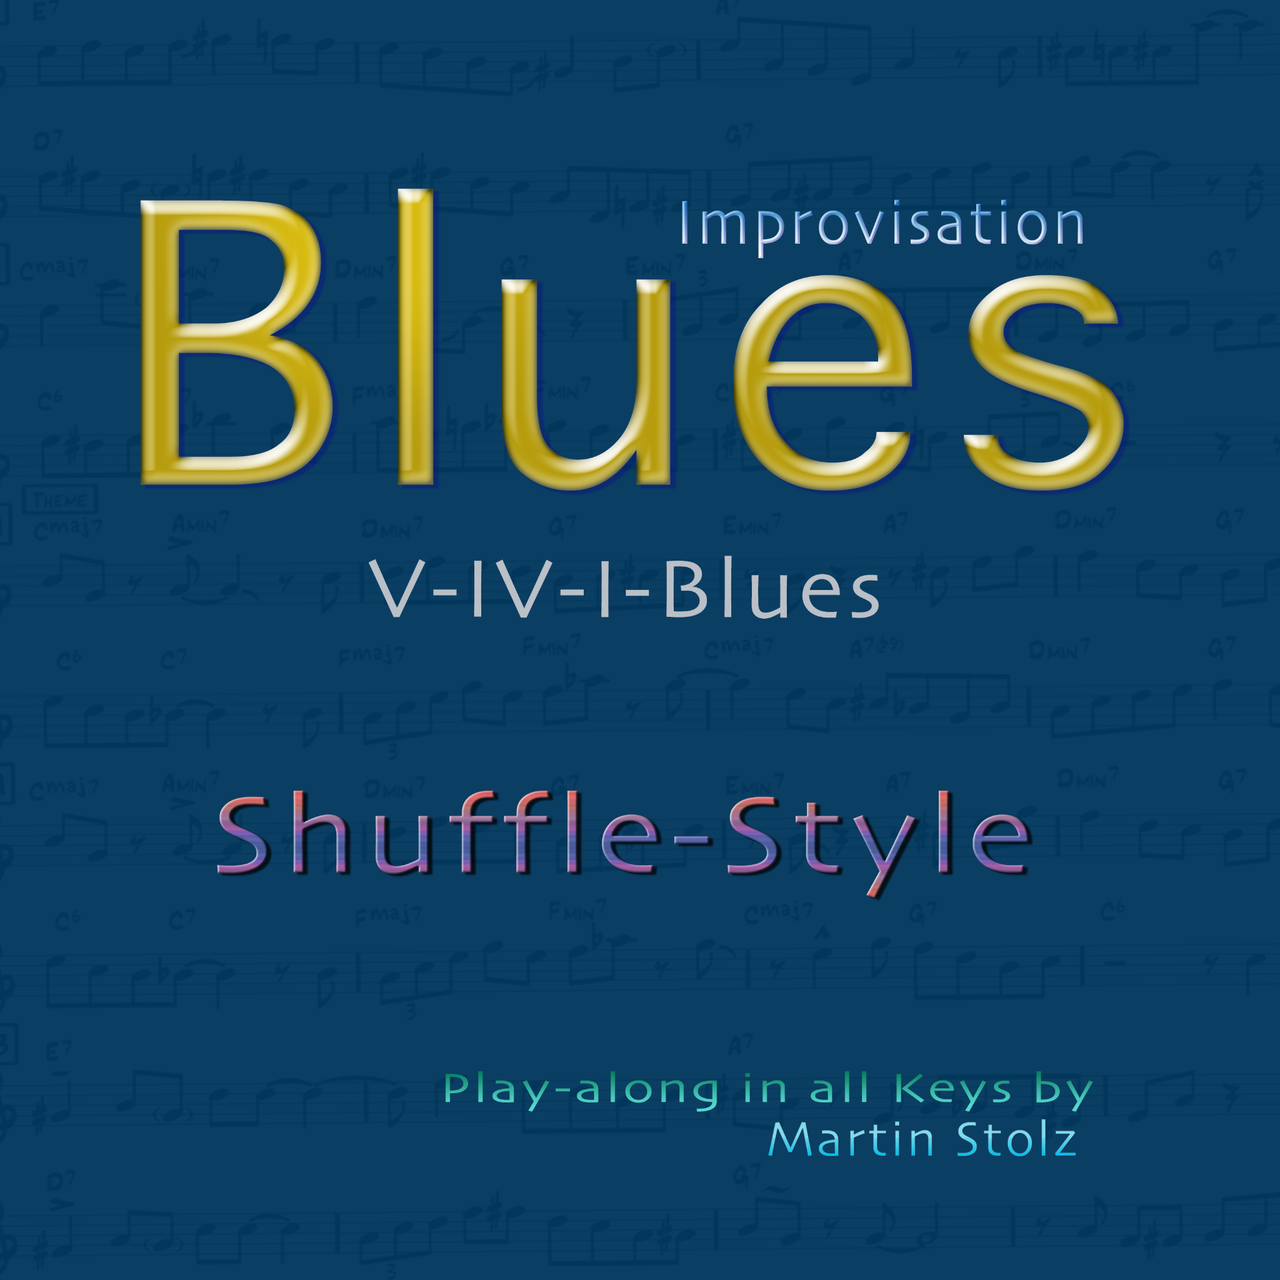 Blues play-along in shuffle-style in all keys